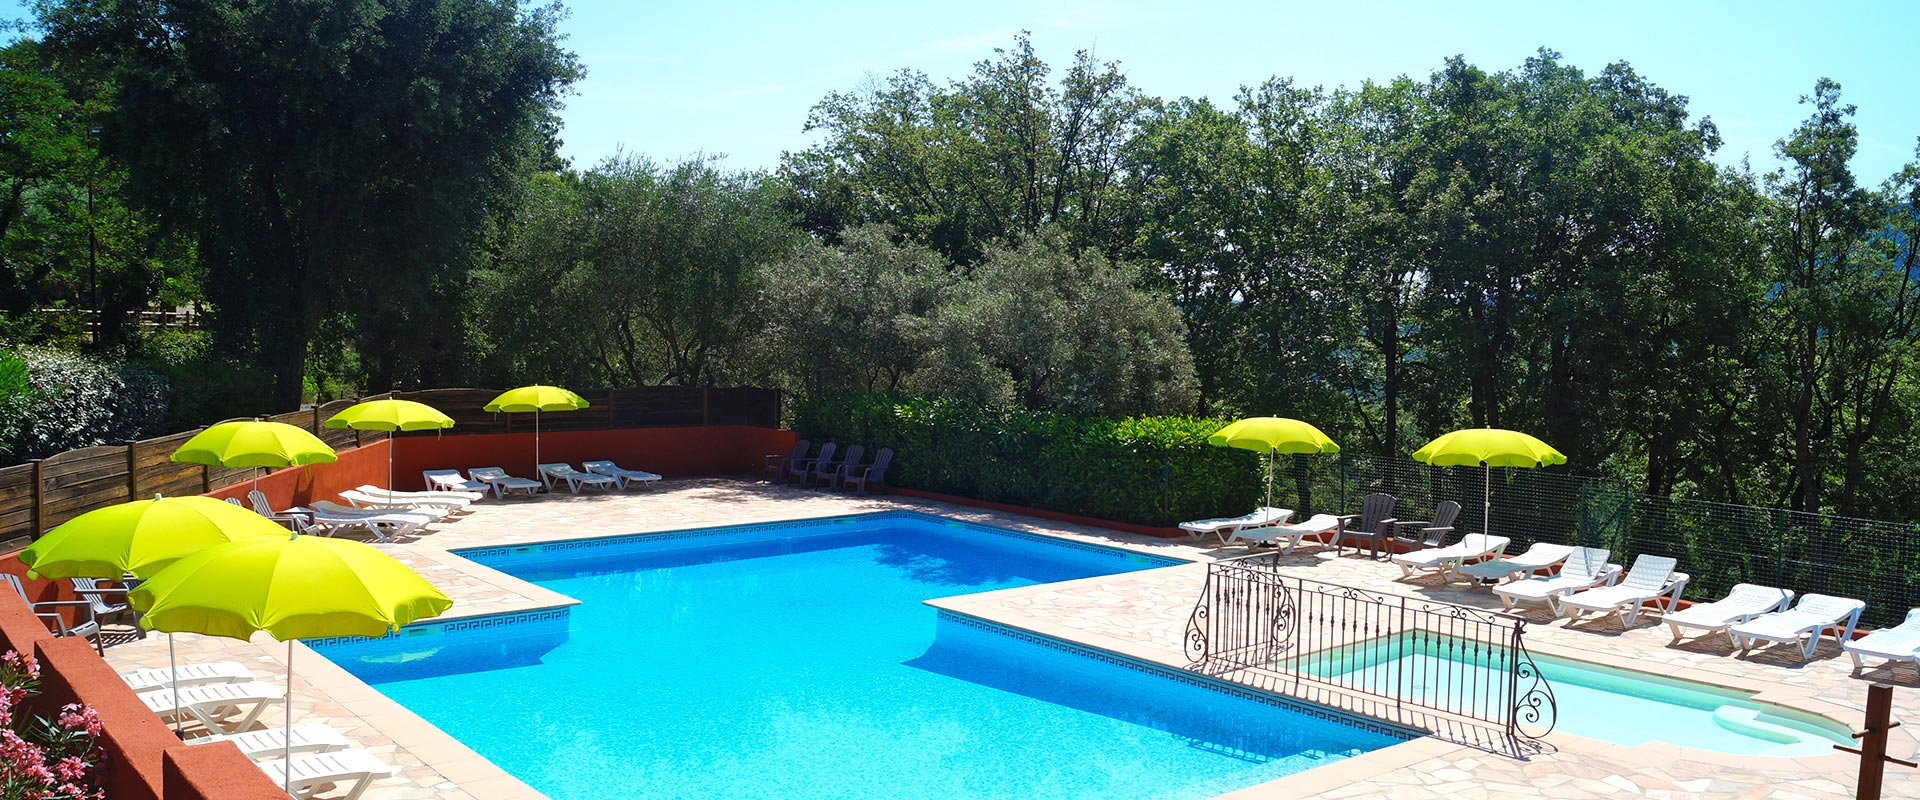 The swimming pool with sun loungers and parasols